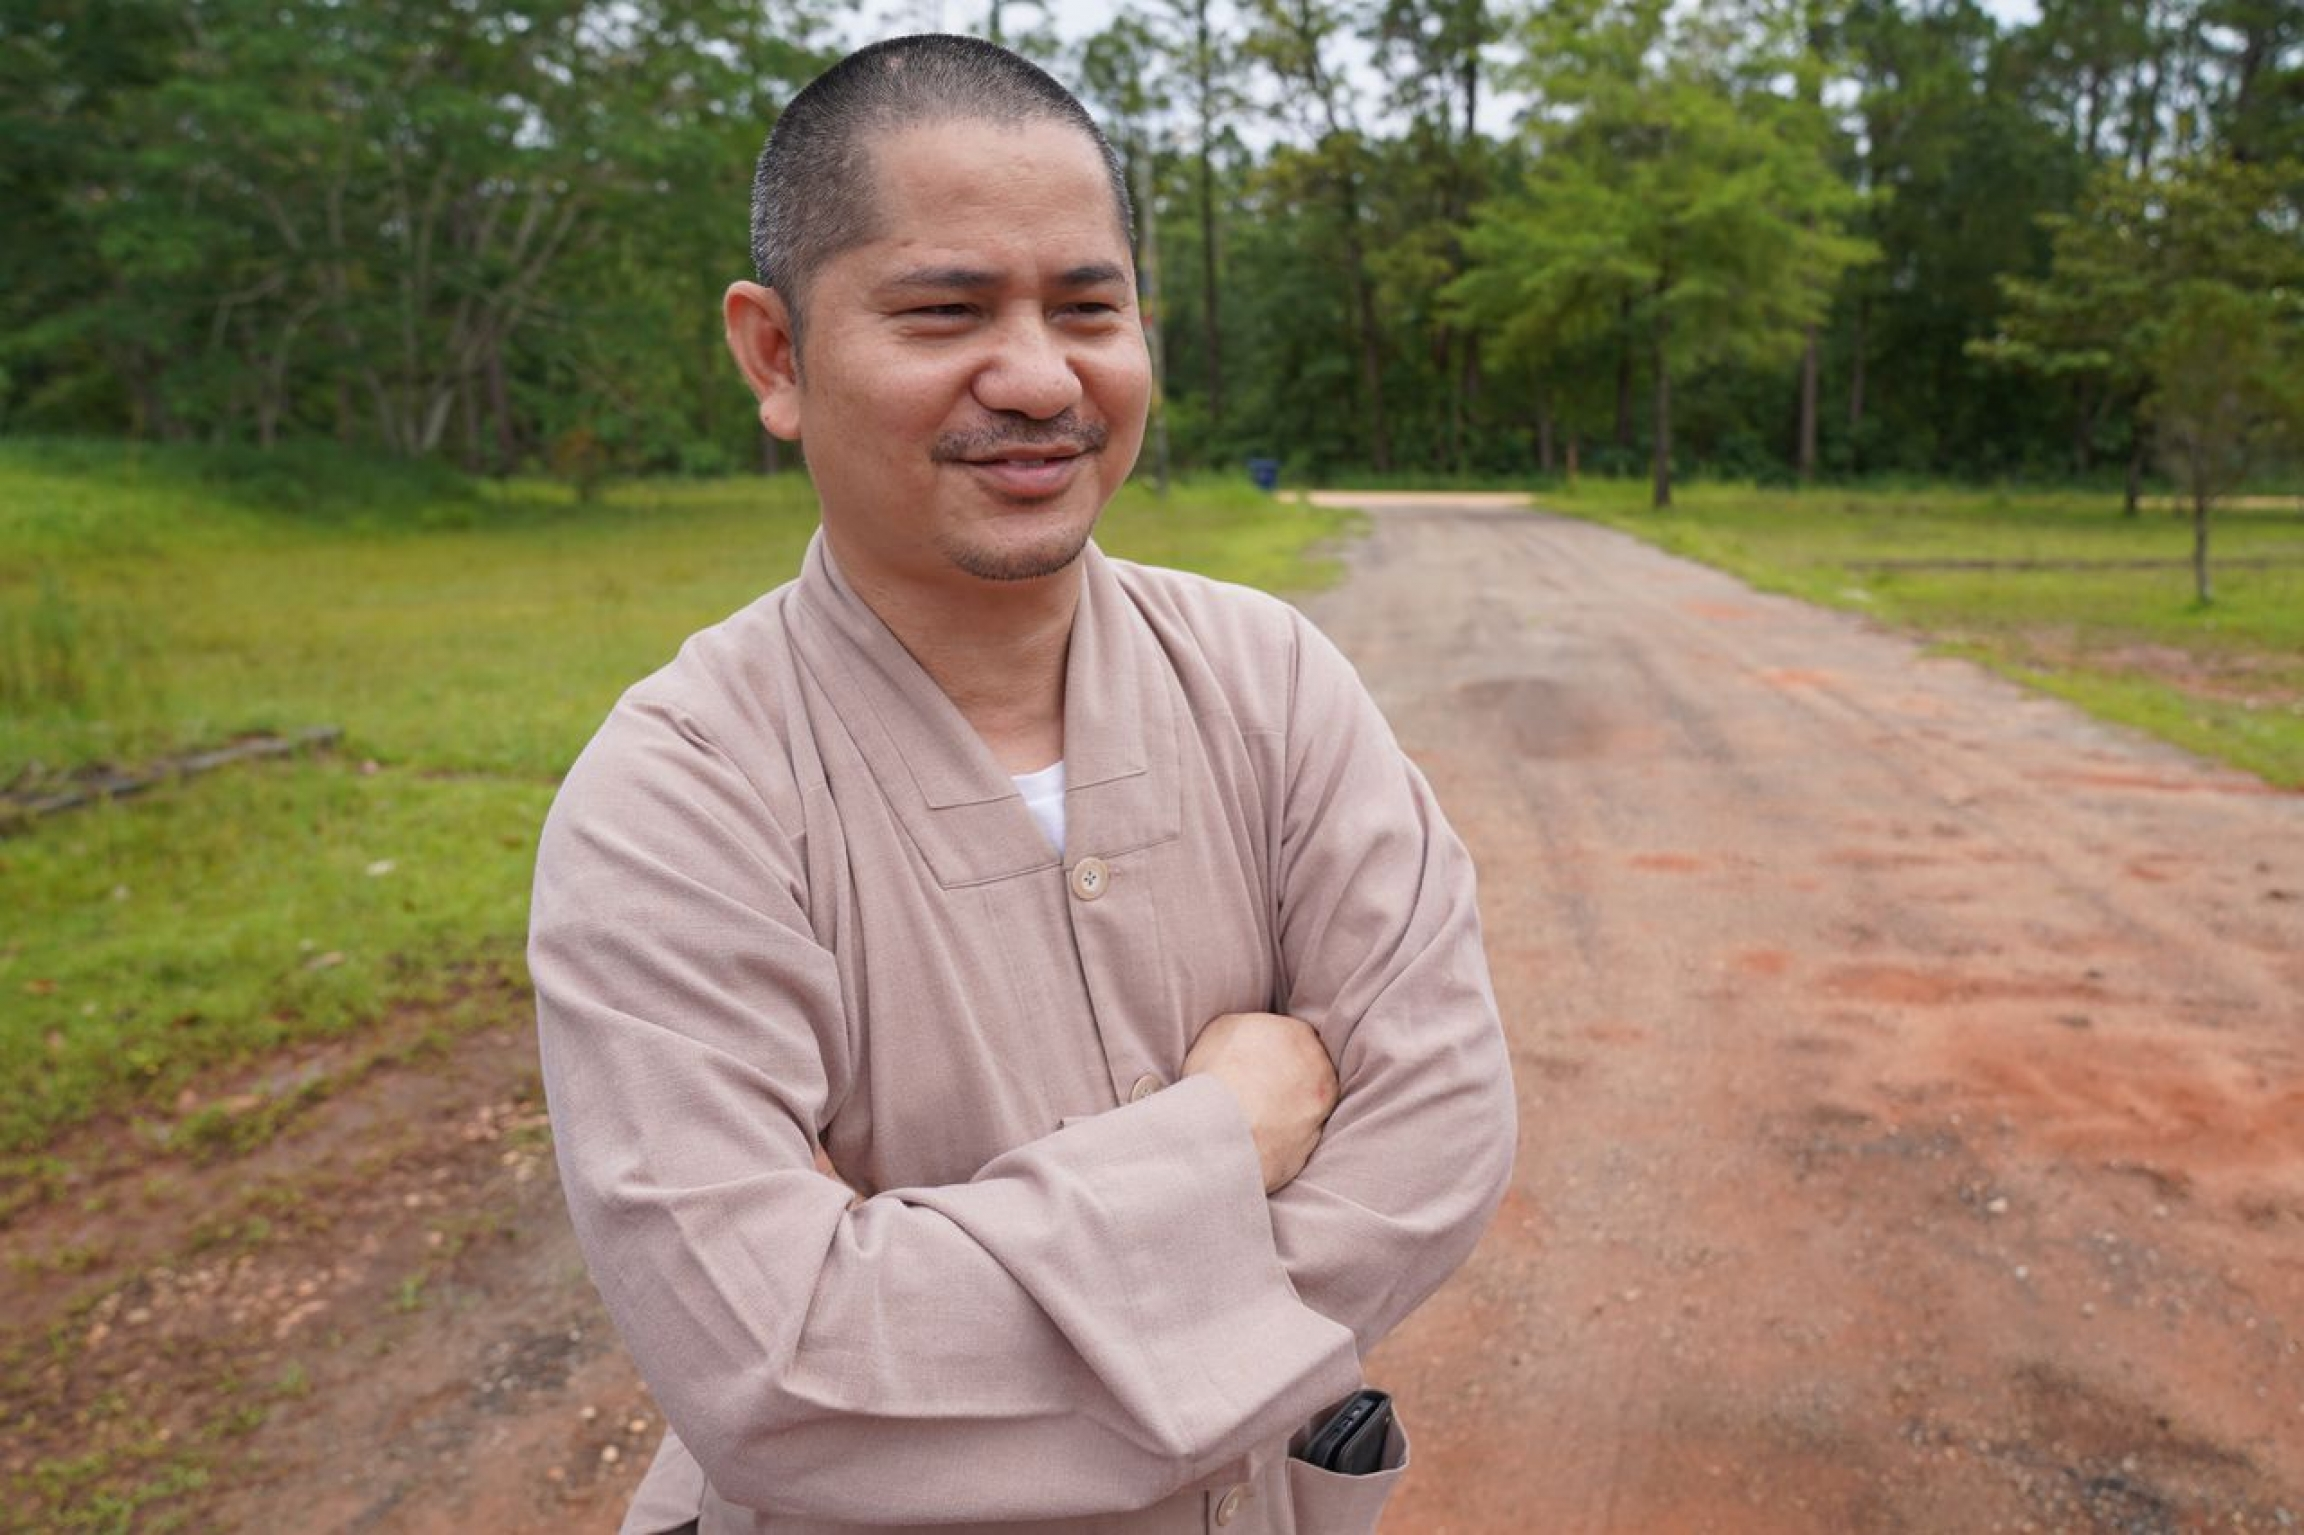 A man smiles while standing with his arms folded